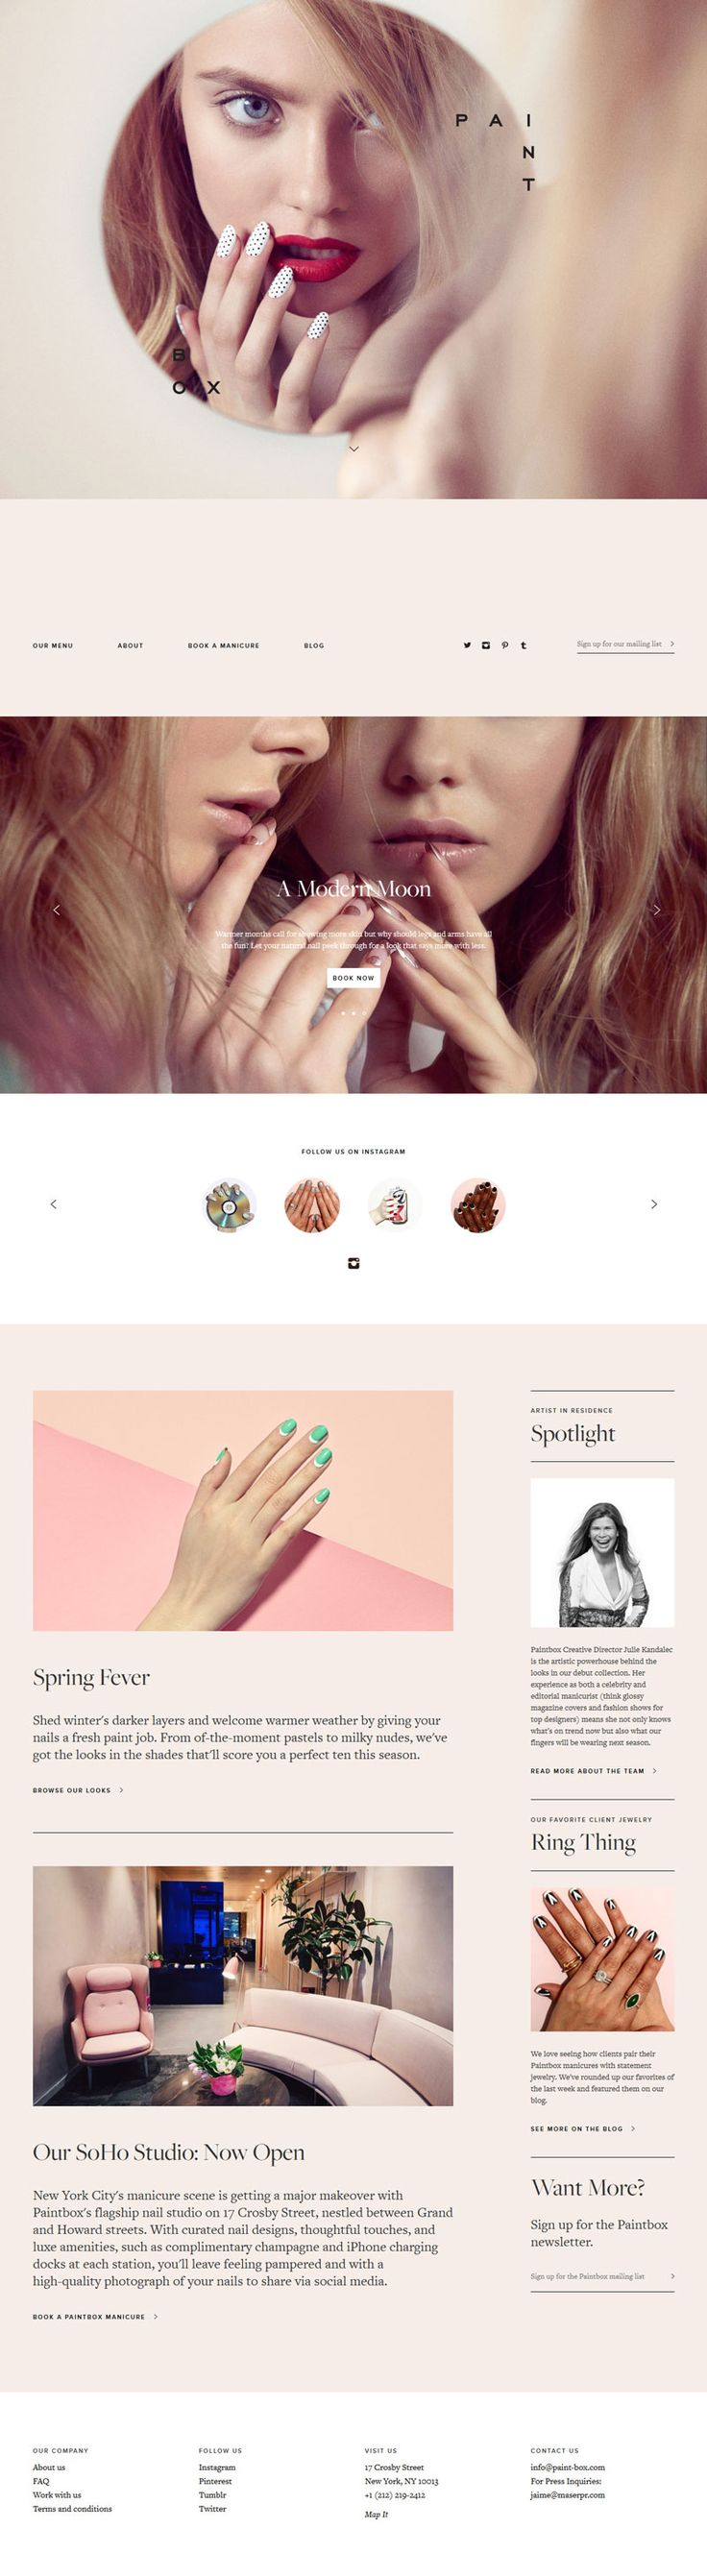 Weekly, Web Design Inspiration for Everyone! Feel Free to Follow us @moirestudiosjkt to see more remarkable pins like this. Or visit our website www.moirestudiosjkt.com to know more about us. #WebDesign #WebsiteInspiration #WebDesignInspiration